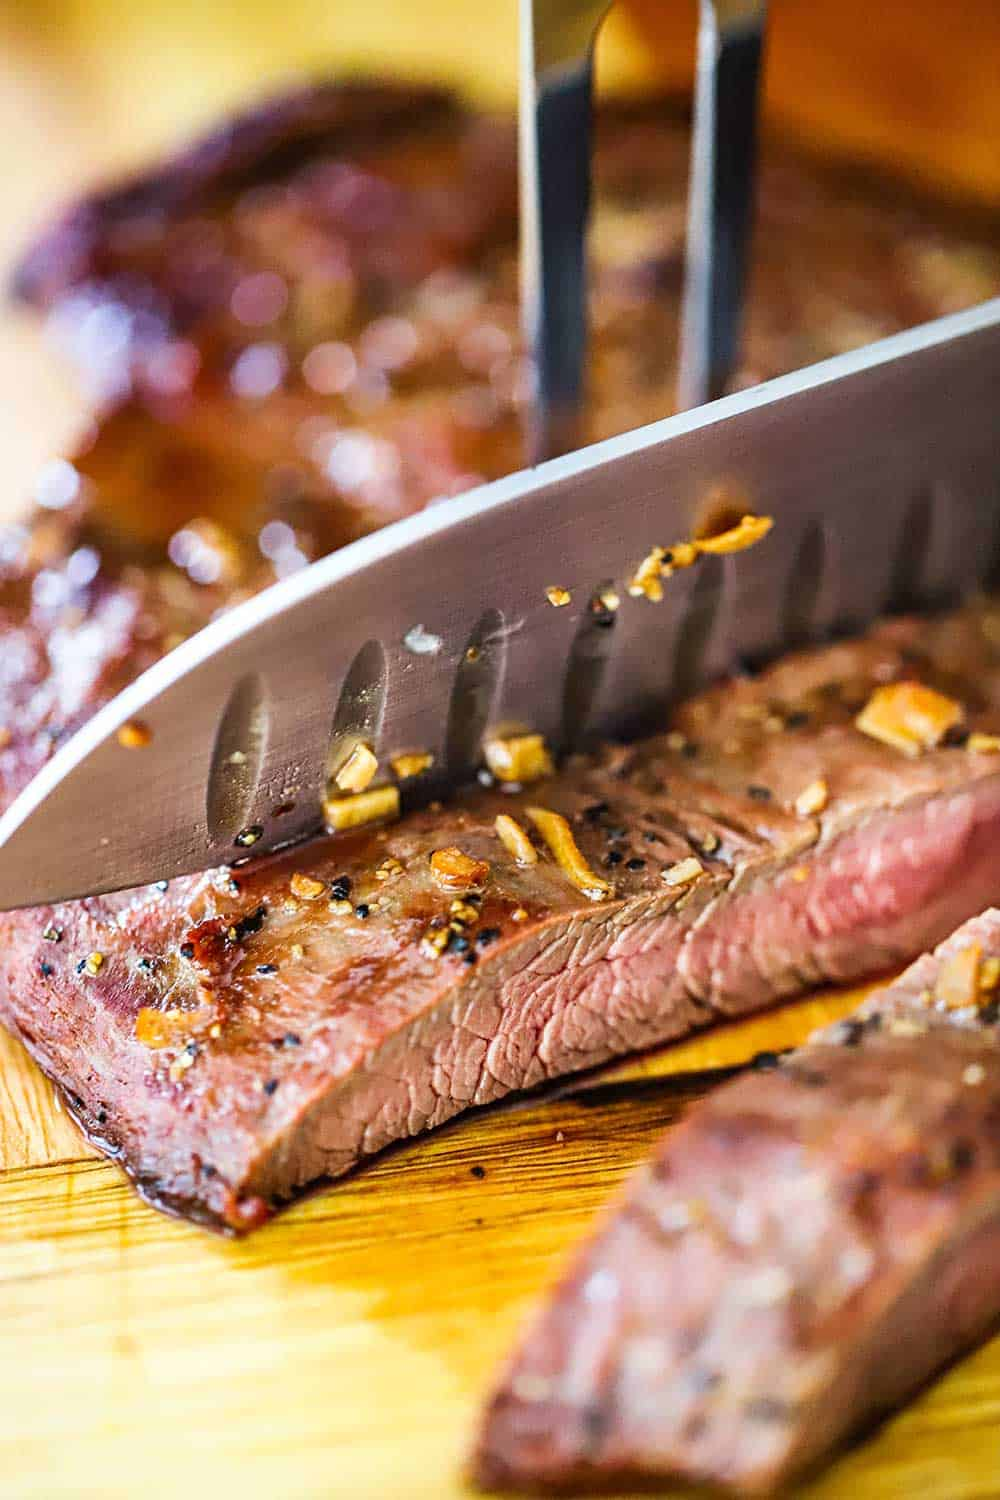 A large chef's knife cutting through a grilled flank steak with a large fork holding it in place.